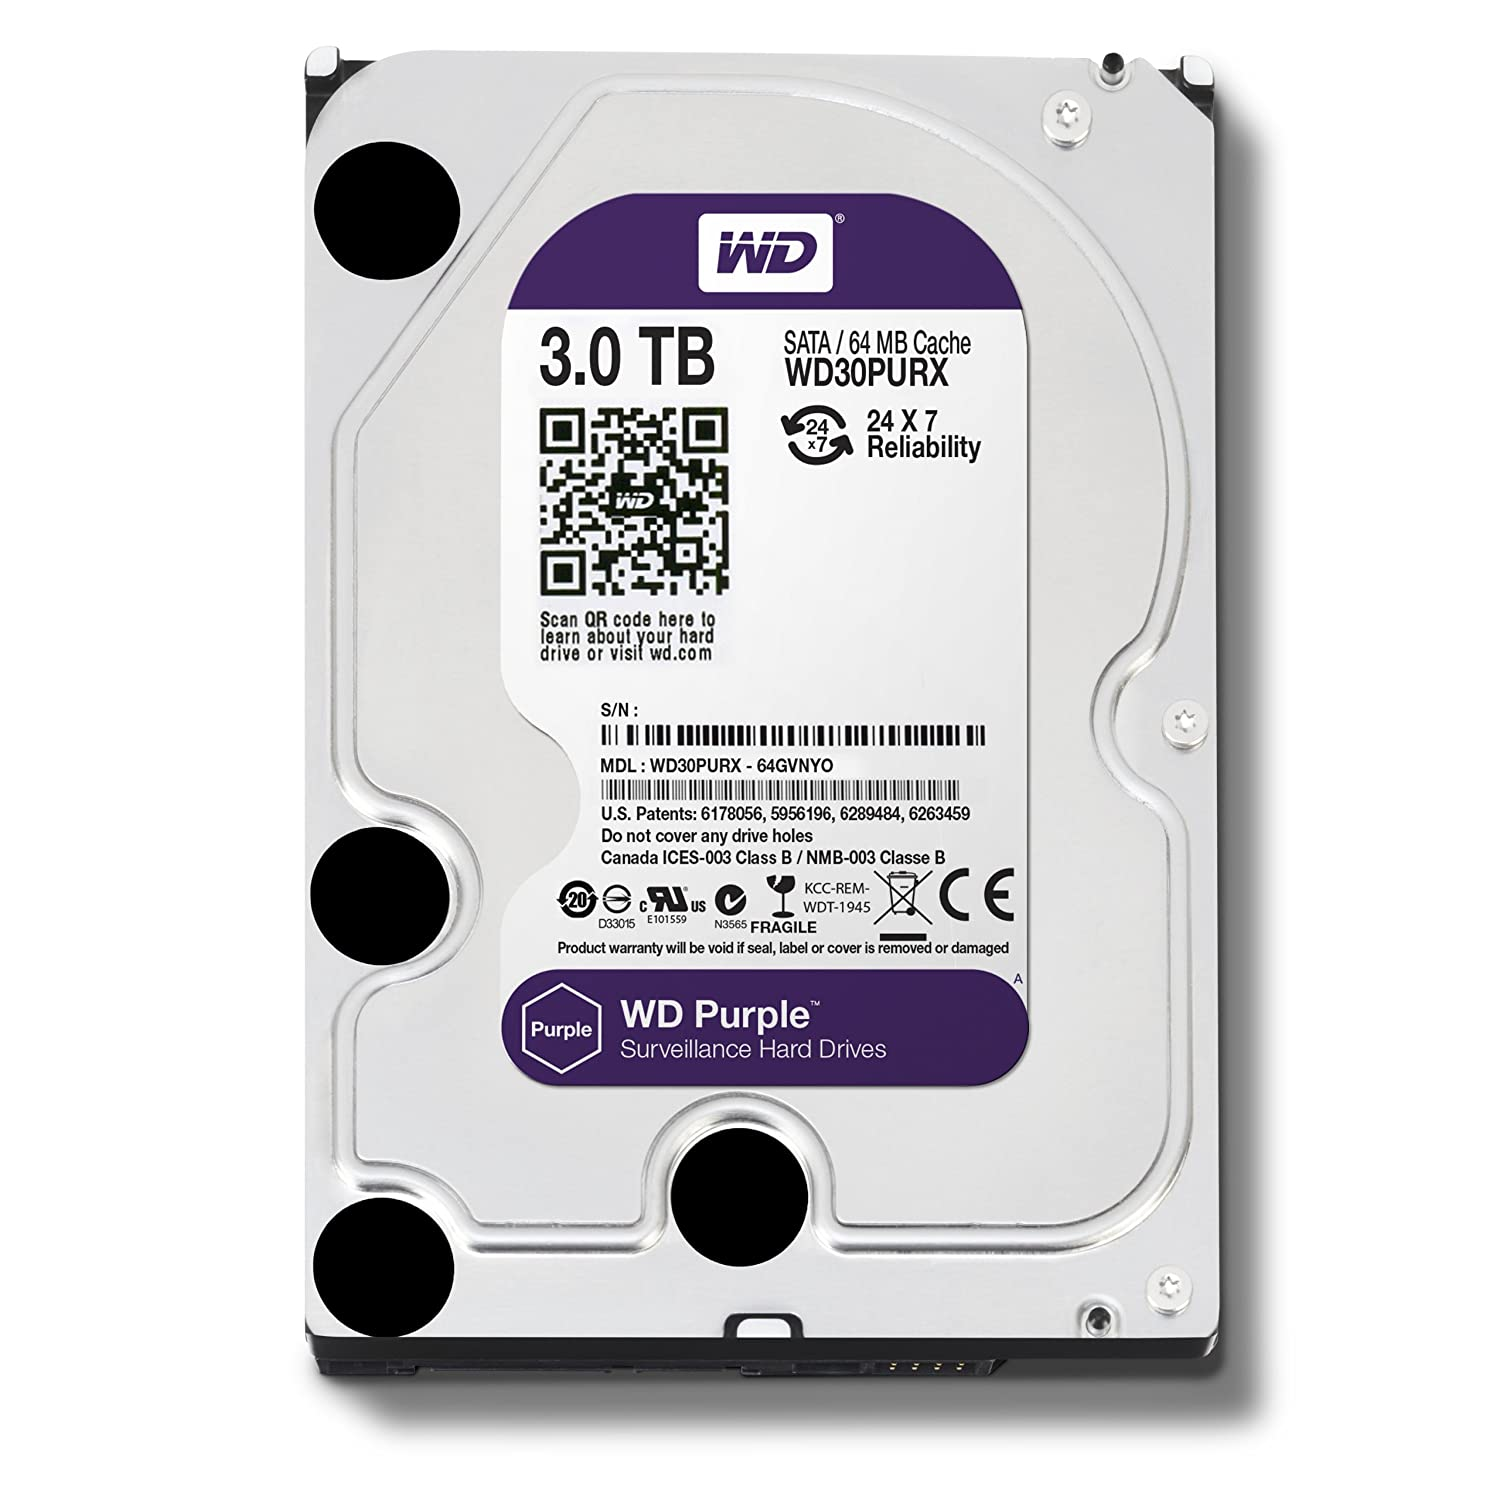 WESTERN DIGITAL 3TB SECURITY HARD DISK DRIVE WD PURPLE SURVEILLANCE HDD, REPAIRED UNIT